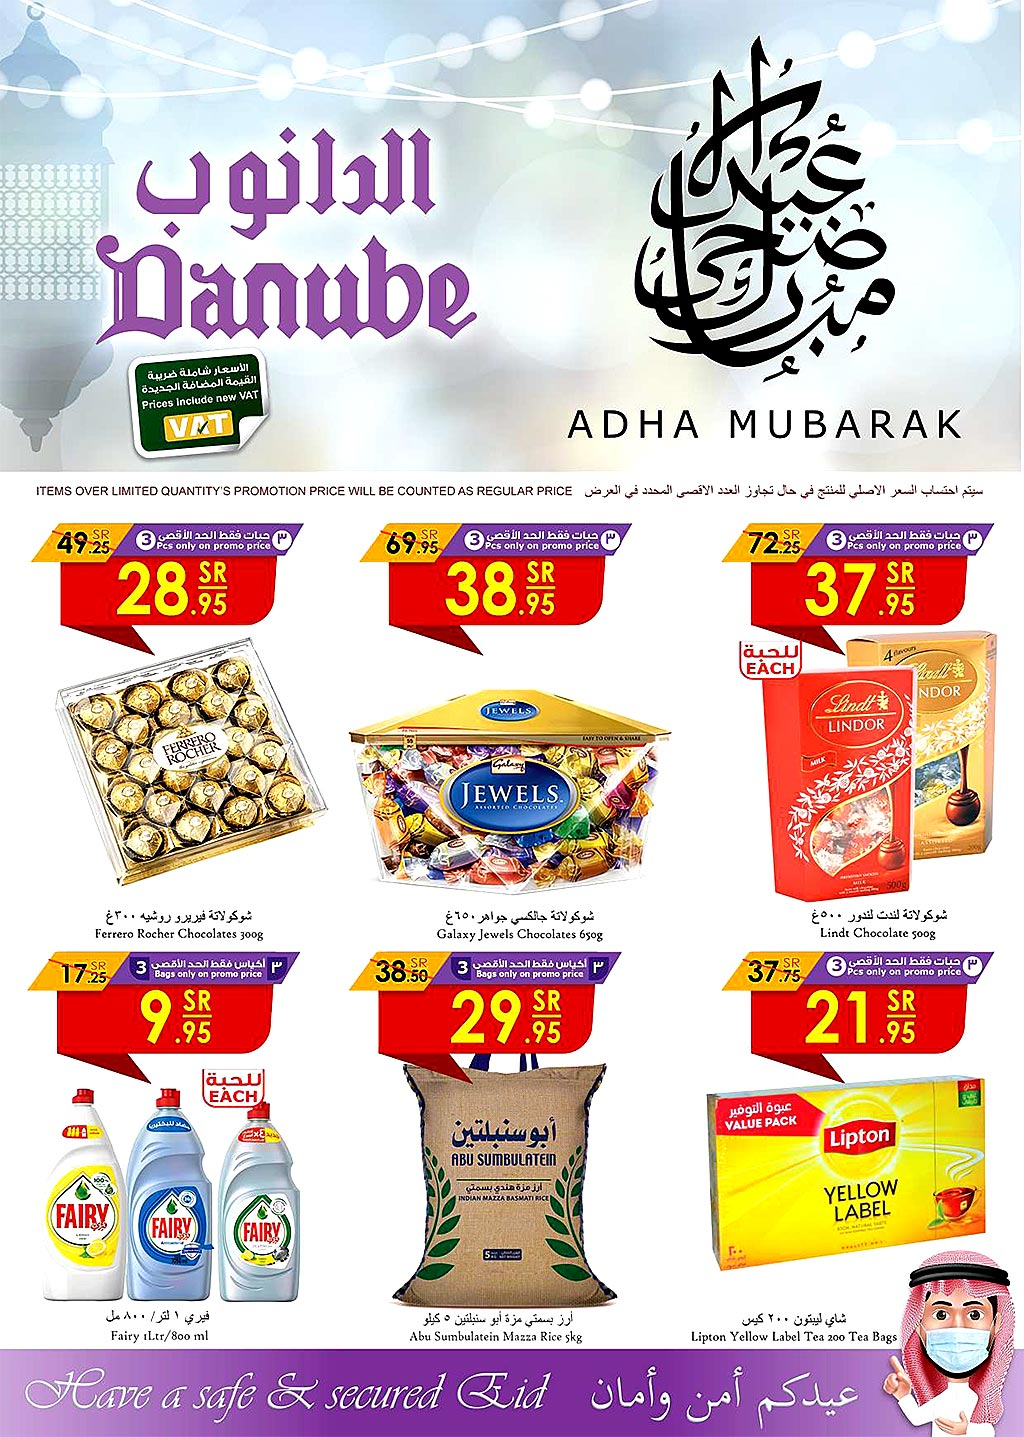 danube offers from 29july to 12aug 2020 page number 1 عروض الدانوب من 29 يوليو حتى 12 أغسطس 2020 صفحة رقم 1